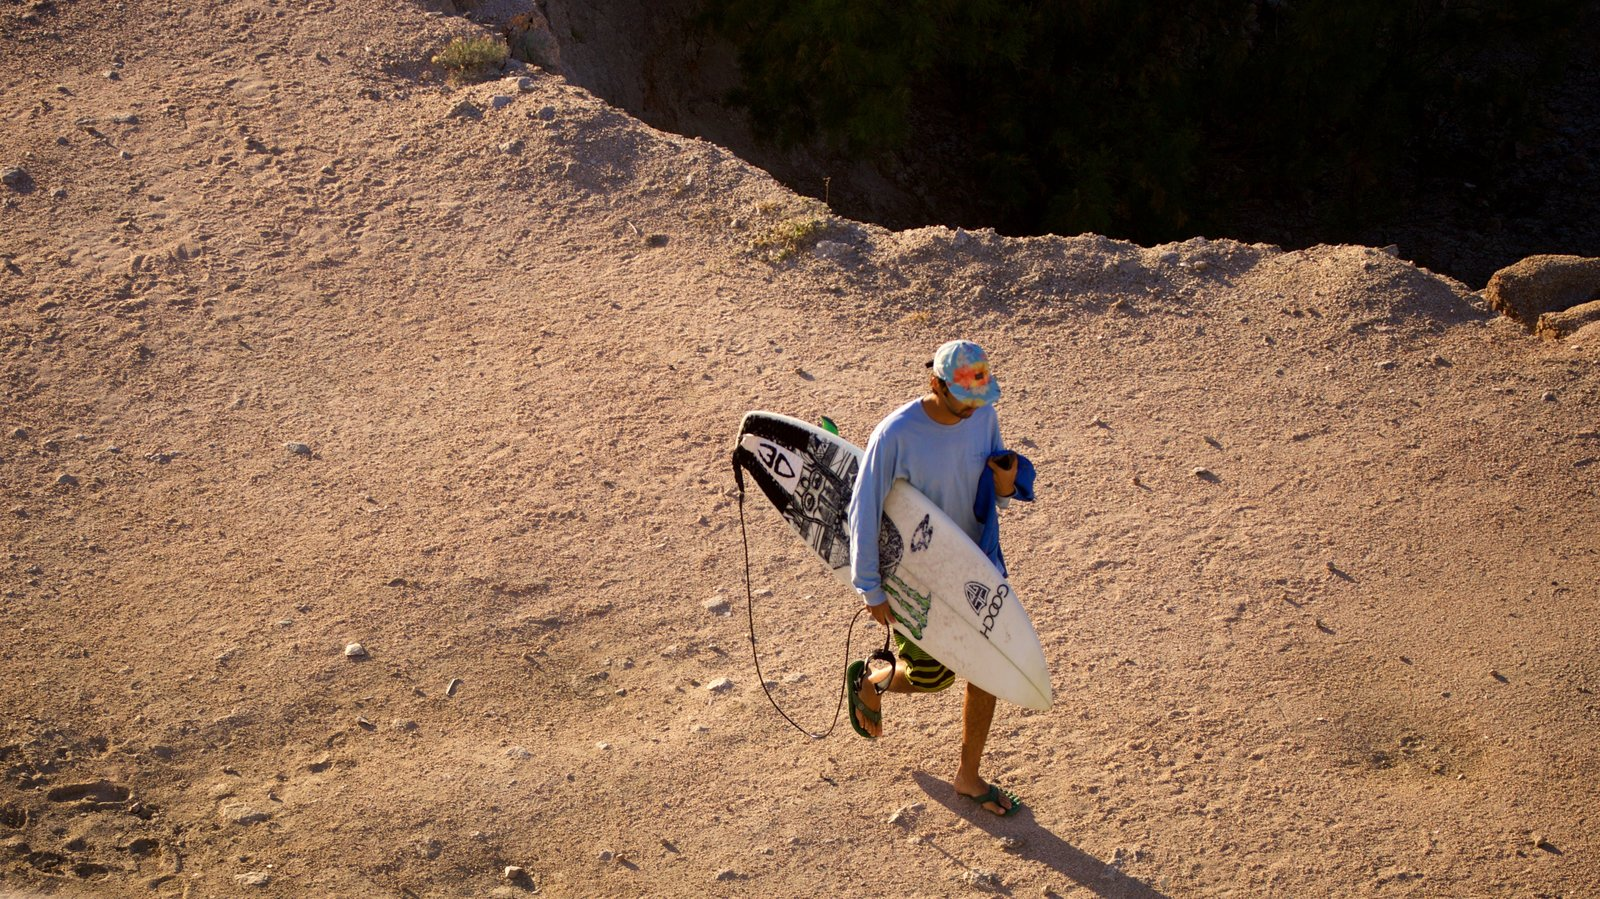 Cabo San Lucas showing a beach and surfing as well as an individual male